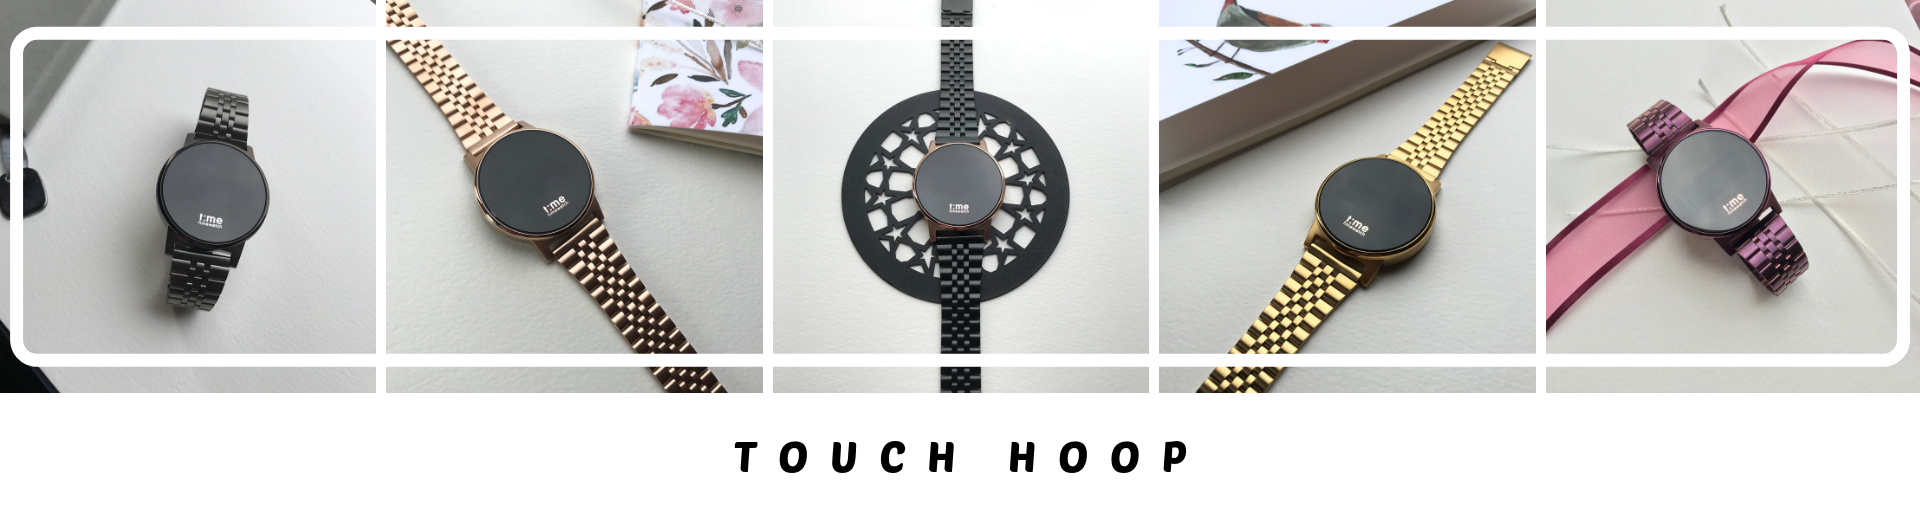 TOUCH HOOP